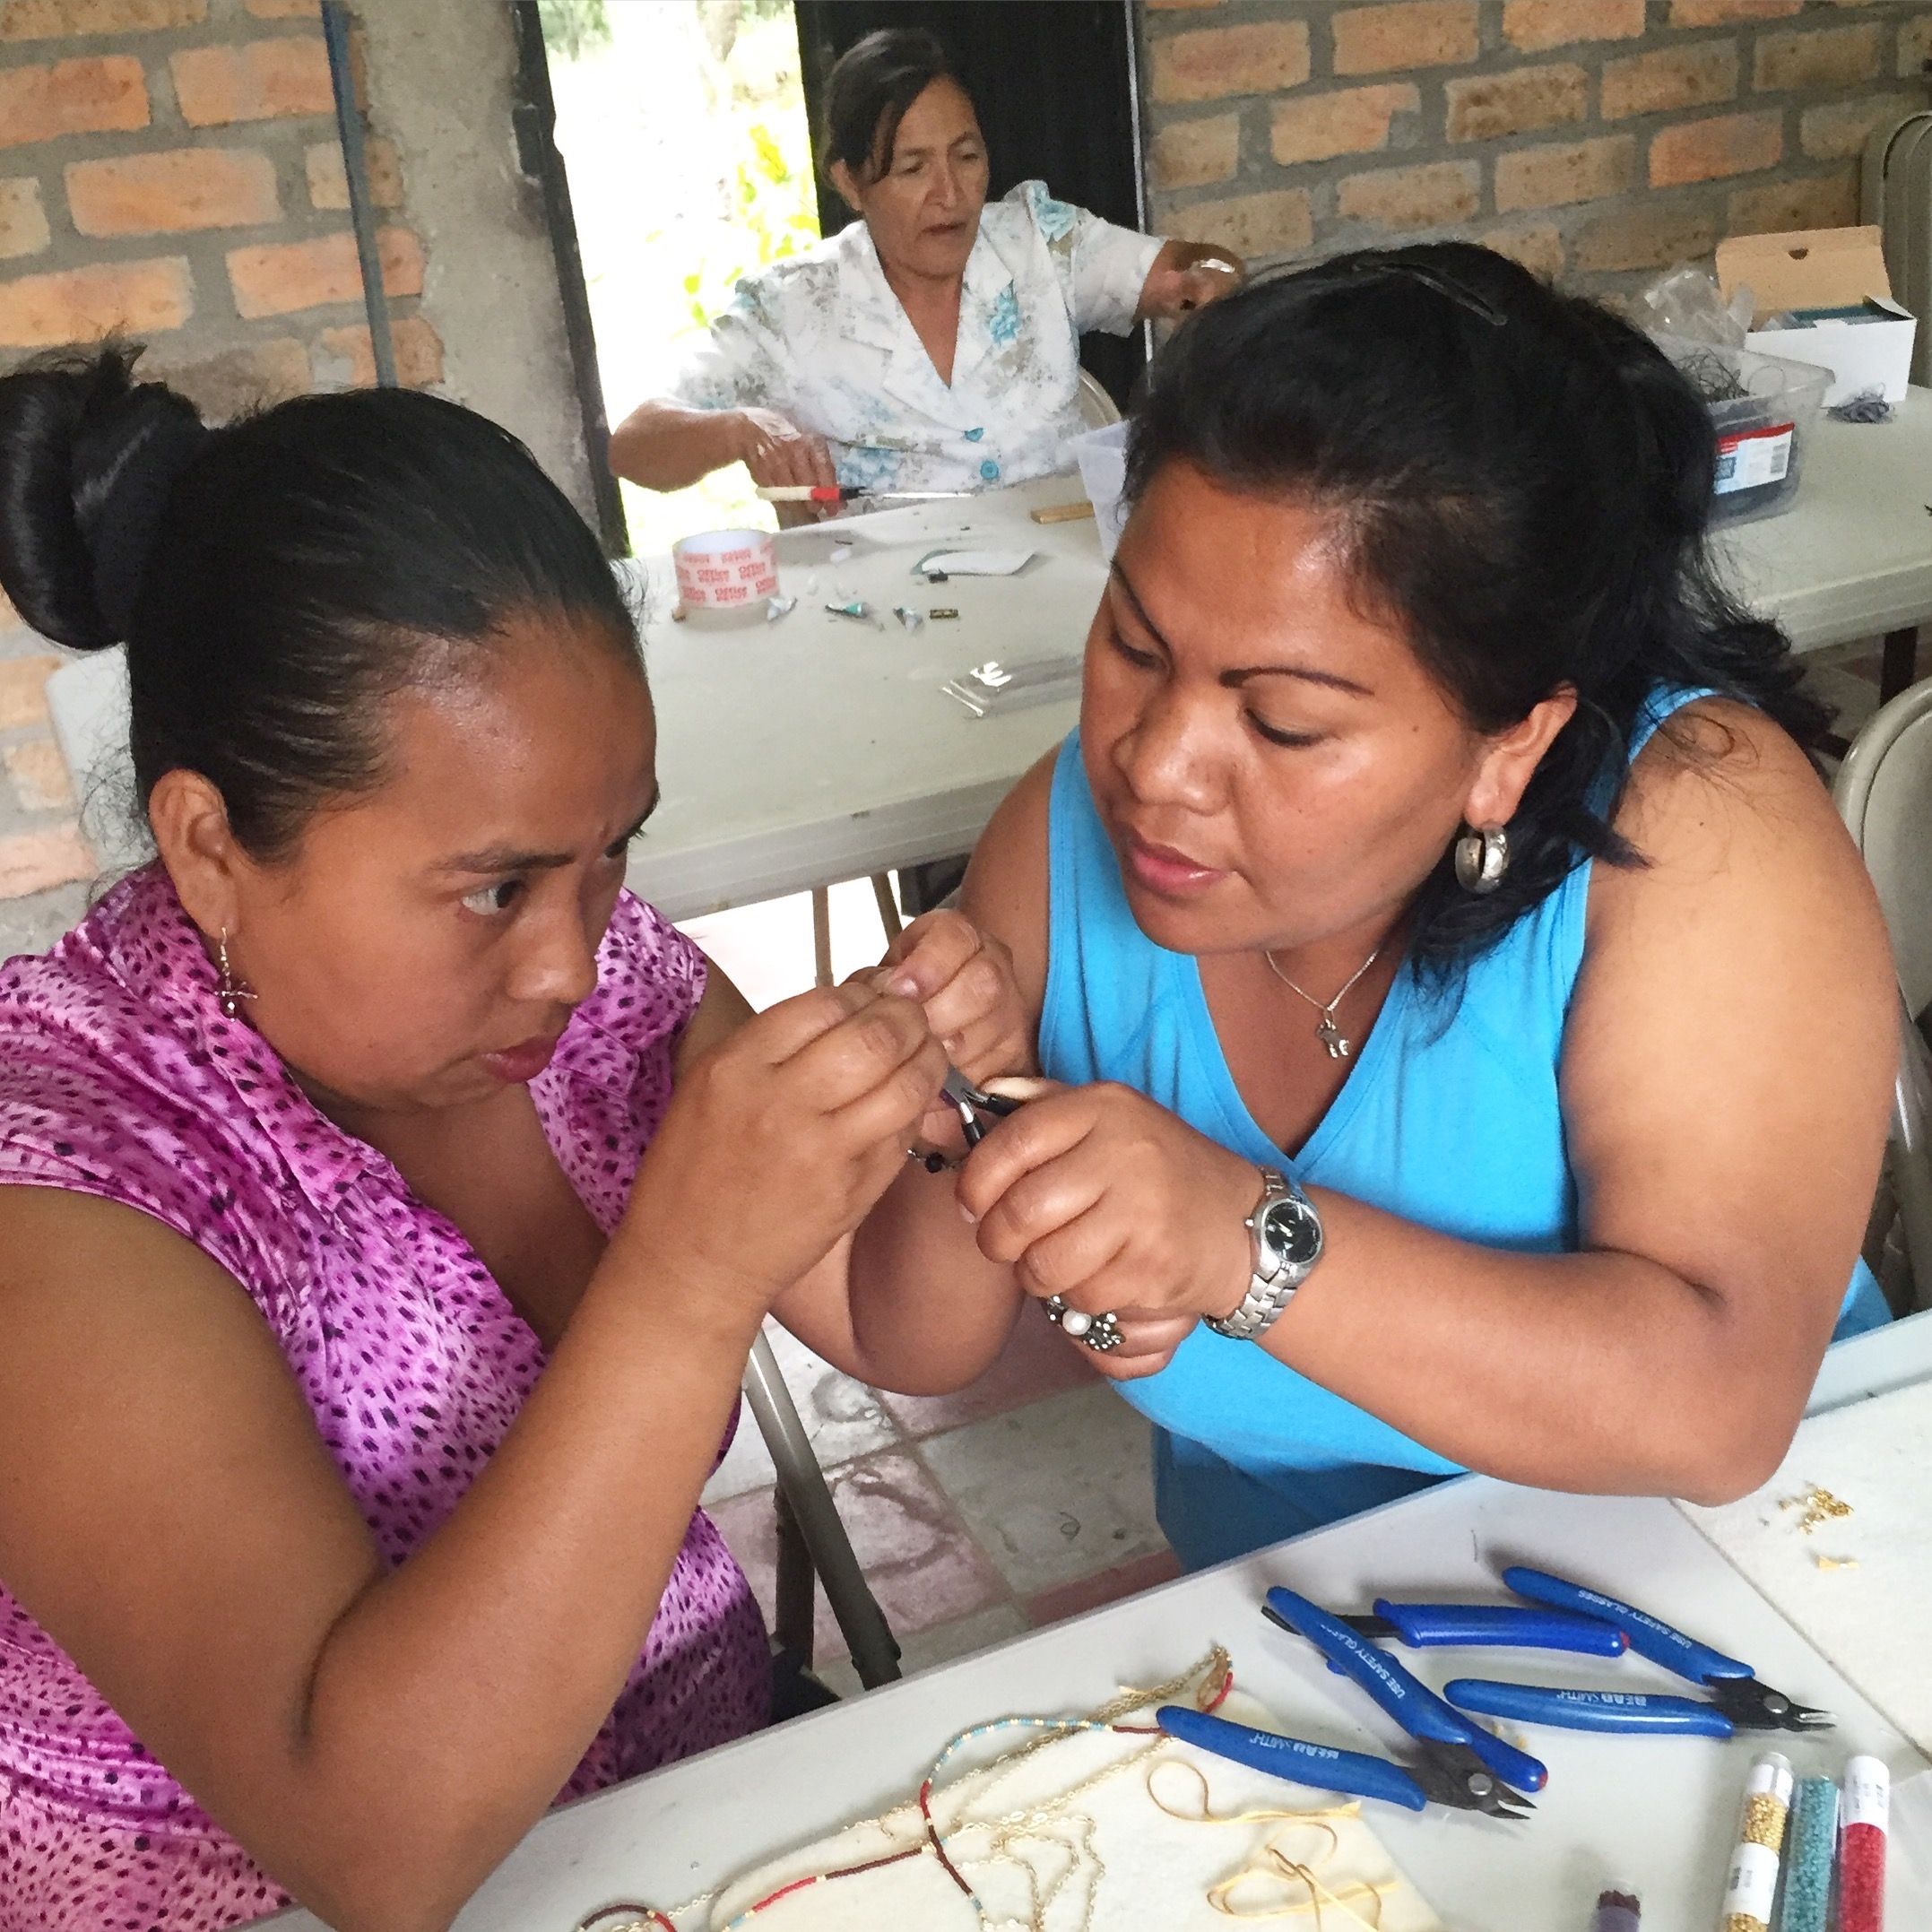 two sisters who have found hope and purpose through jewelry design.